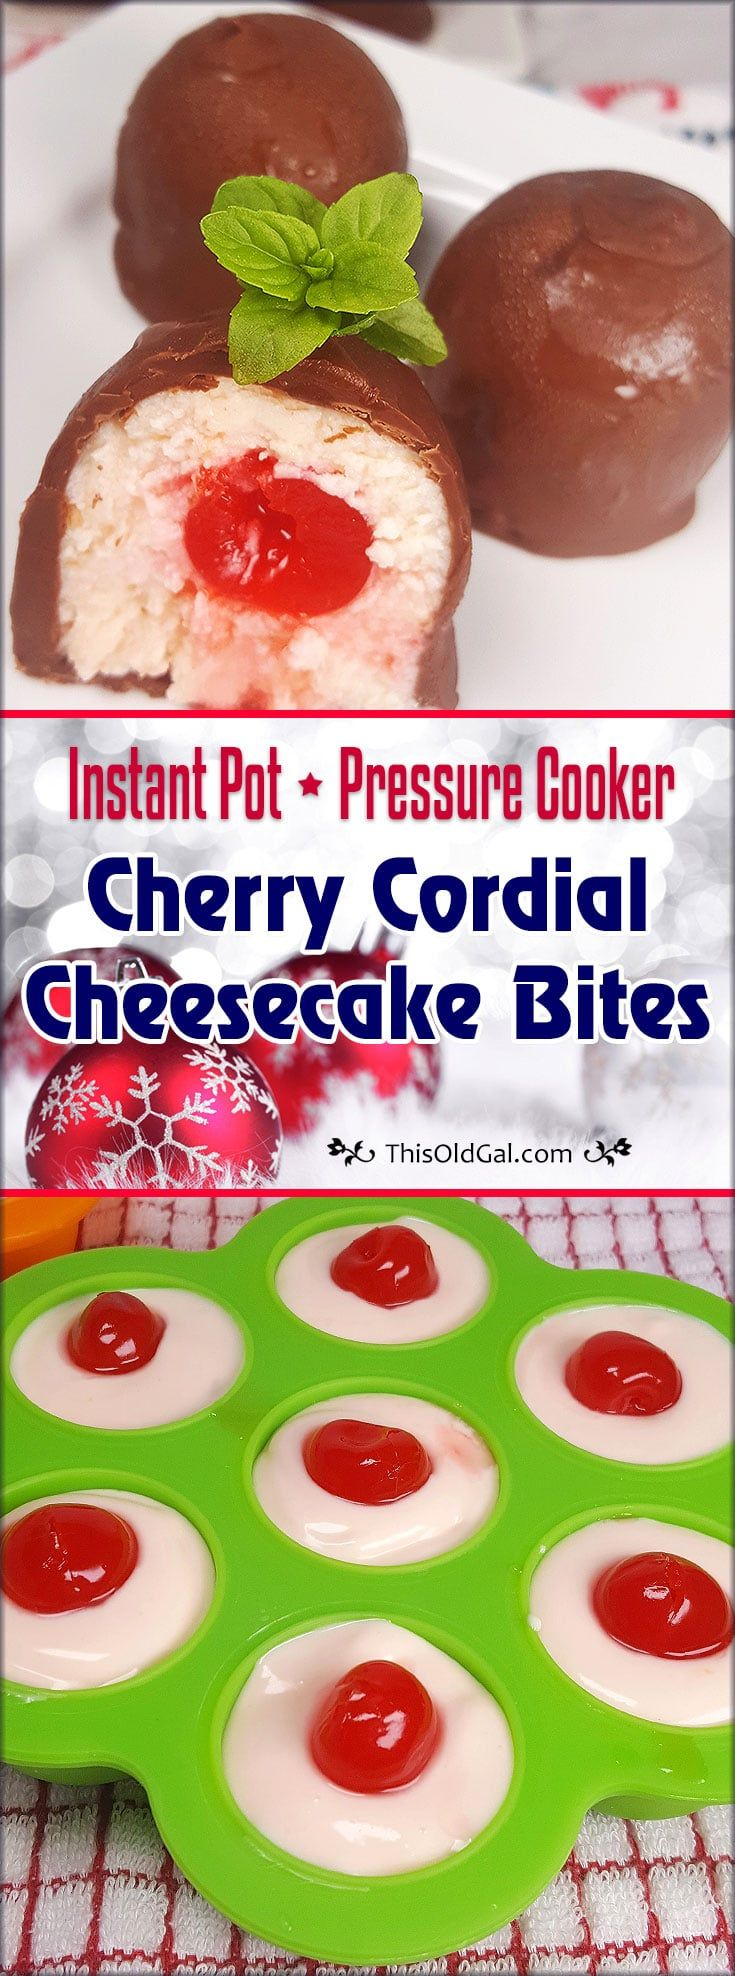 Pressure Cooker Cherry Cordial Cheesecake Bites are filled with Cherry Cheesecake and Orange Liqueur soaked Maraschino Cherries. via @thisoldgalcooks